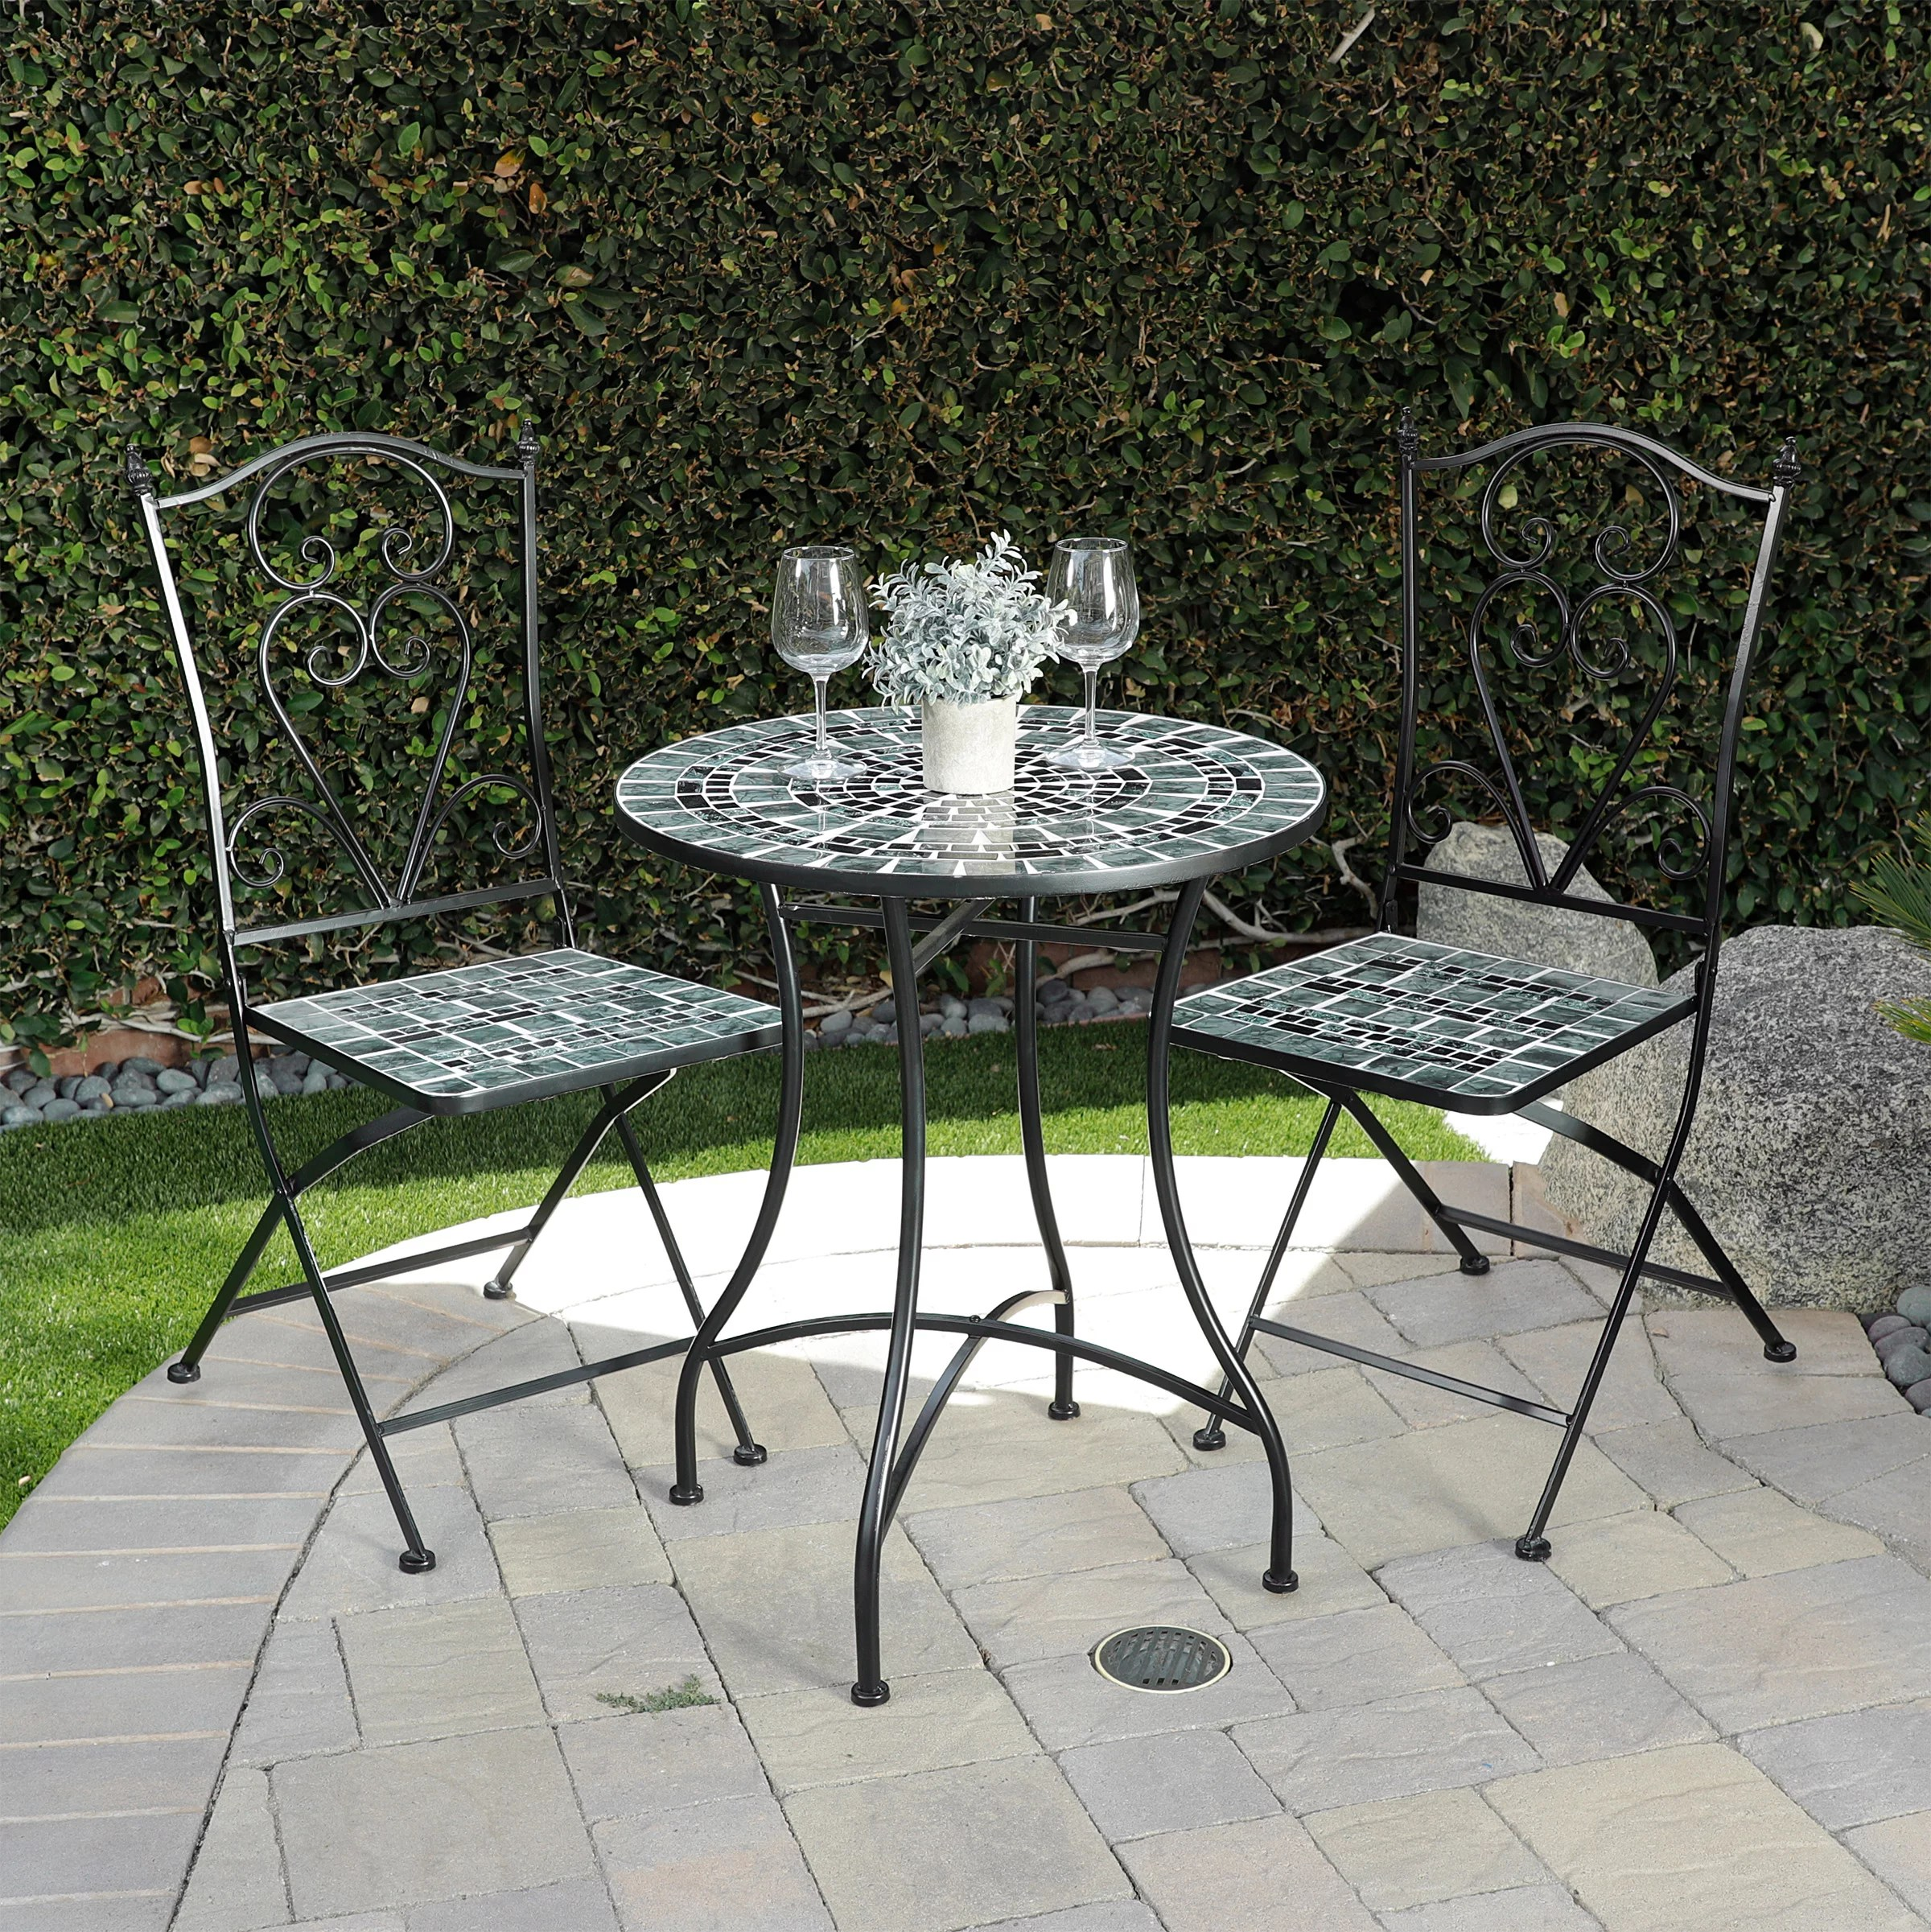 alpine outdoor marbled mosaic bistro set metal 3 piece foldable chairs